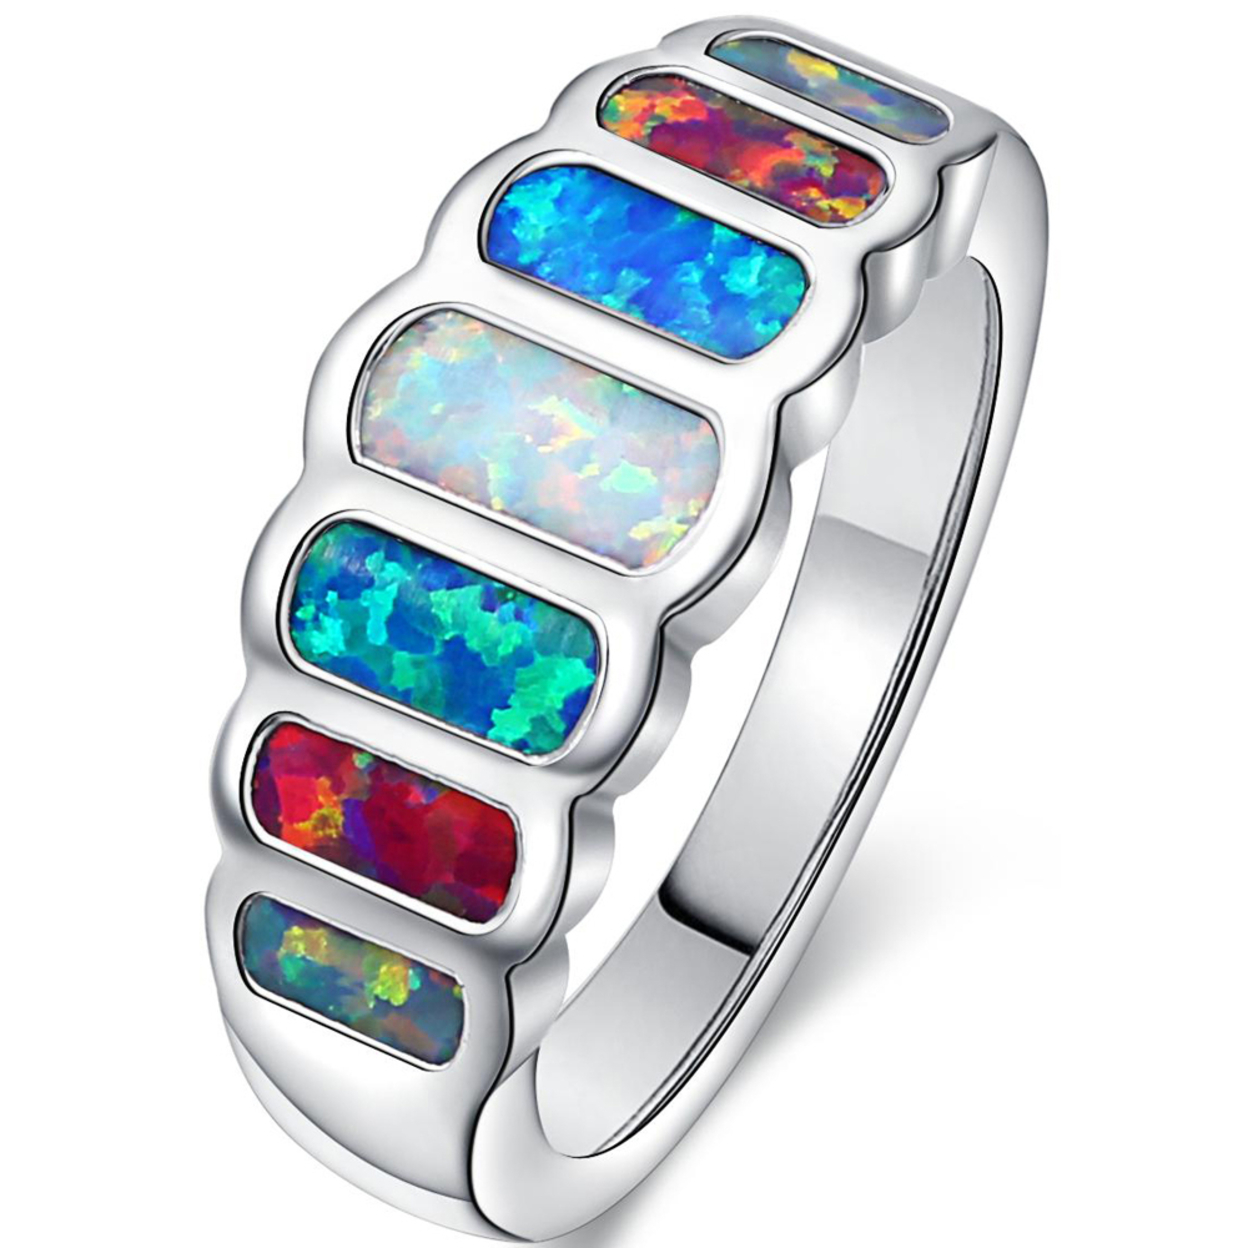 White Rhodium Plated Multi Color Fire Opal Statement Ring R1774-s Size 5